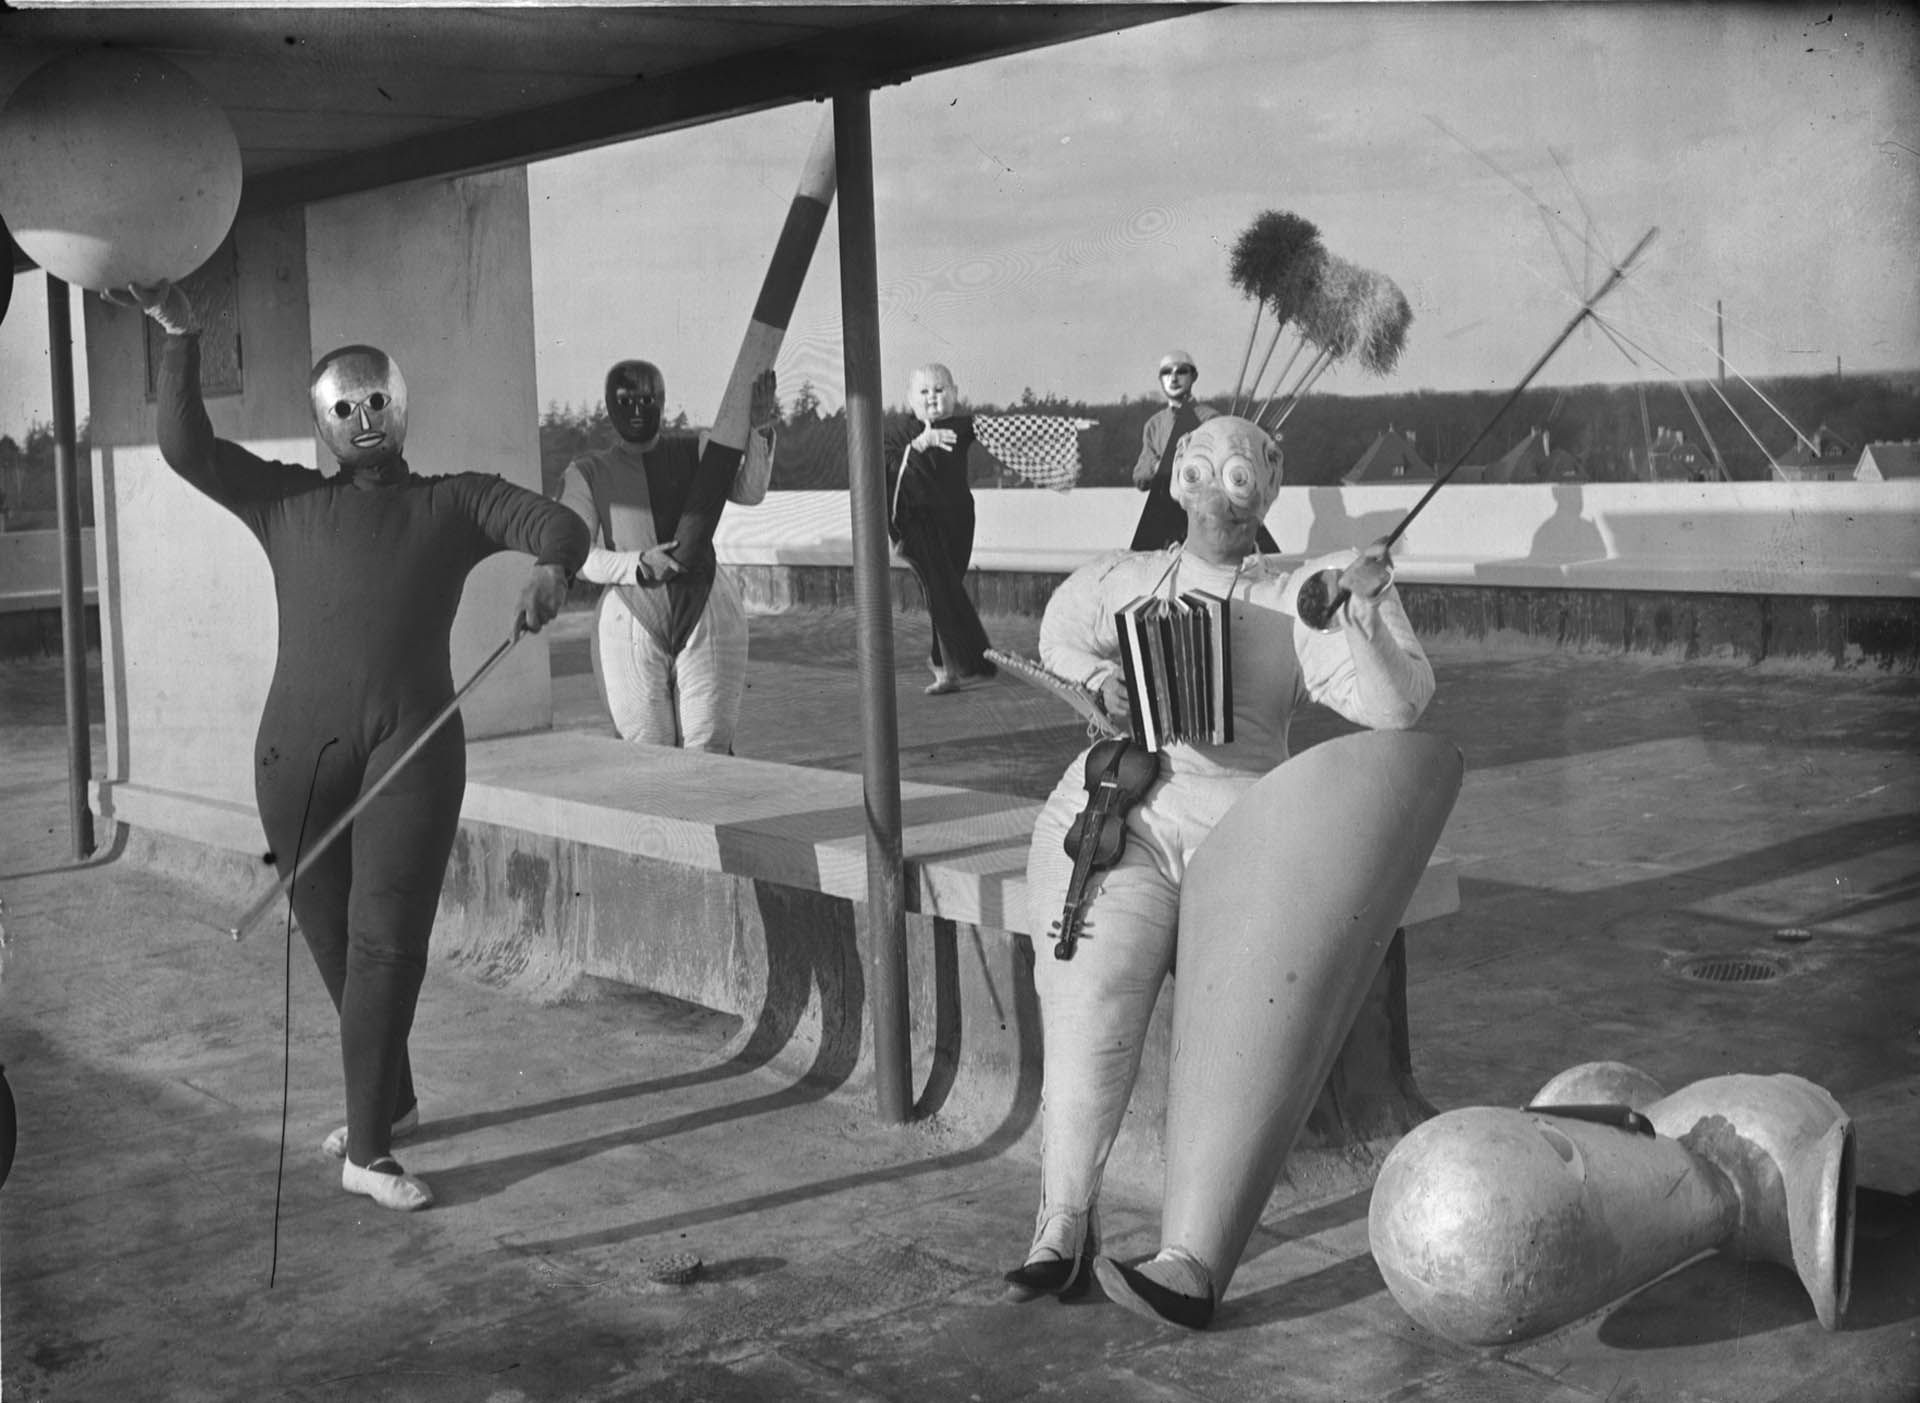 """Pantomime Treppenwitz"", produced by Oskar Schlemmer with left to right: Werner Siedhoff, Oskar Schlemmer, Roman Clemens and Andor Weininger, 1927. (Photo: Erich Consemüller"